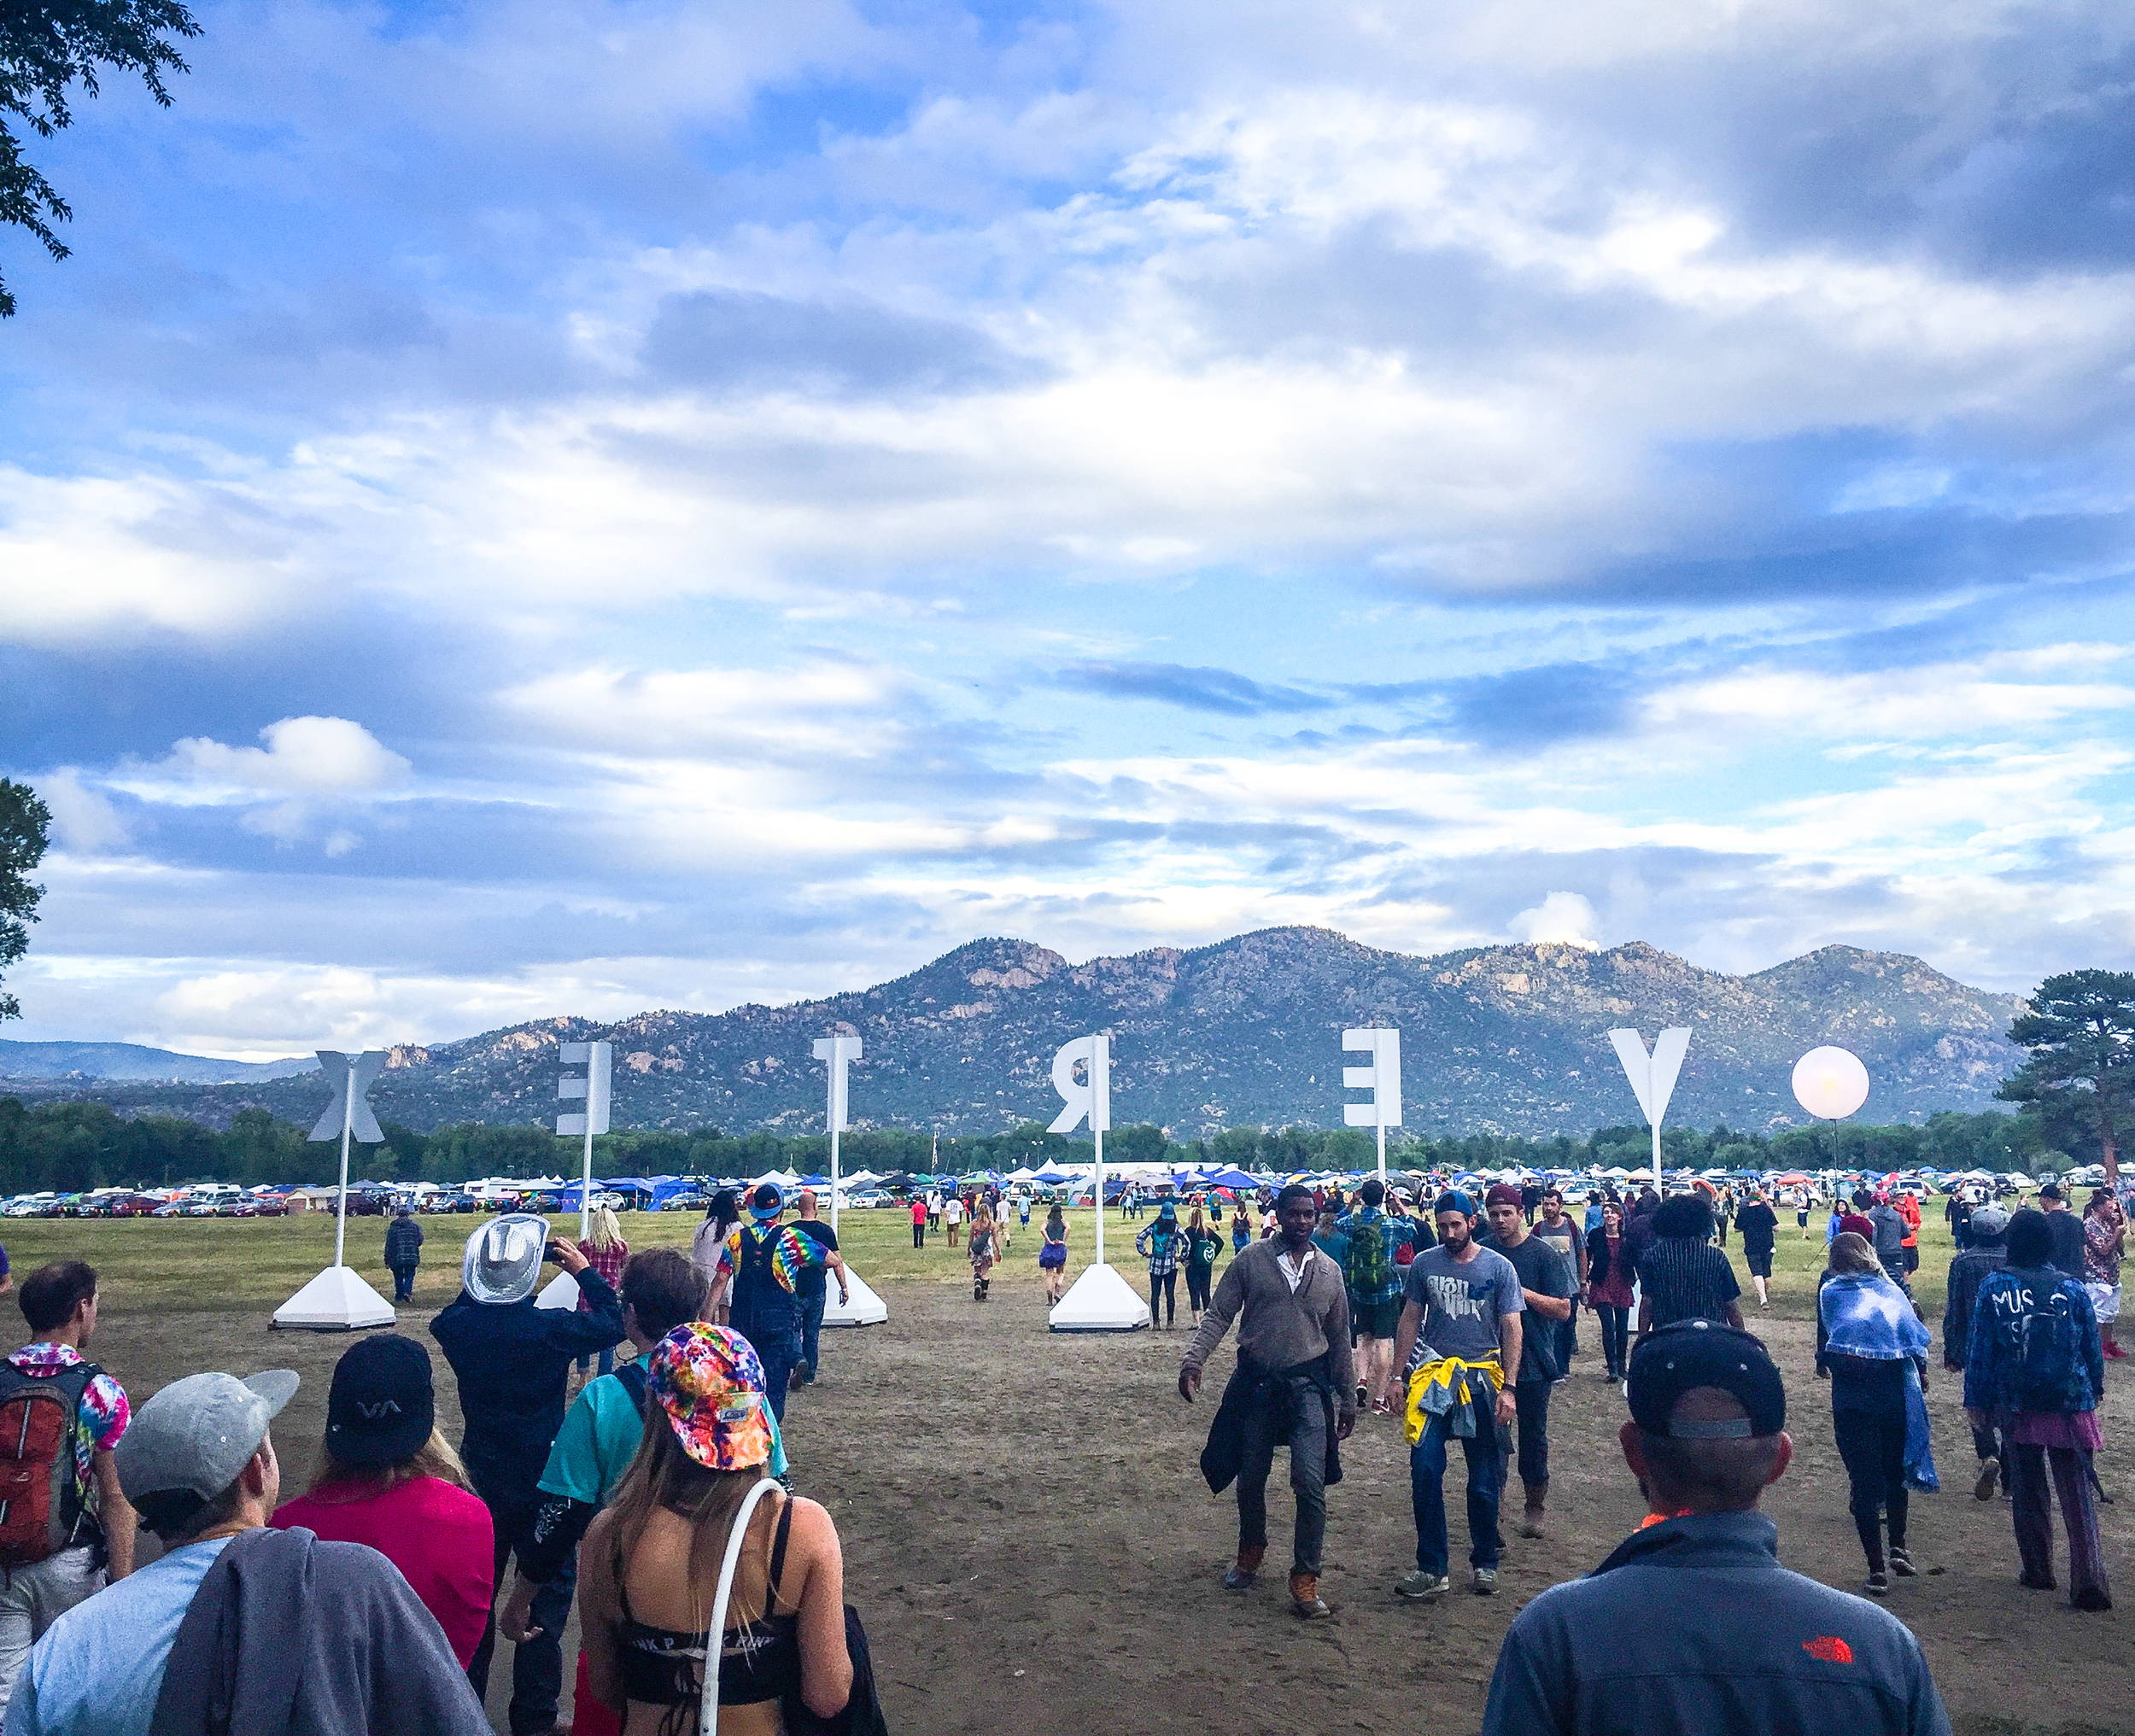 Good music and mountain views at the Vertex Festival